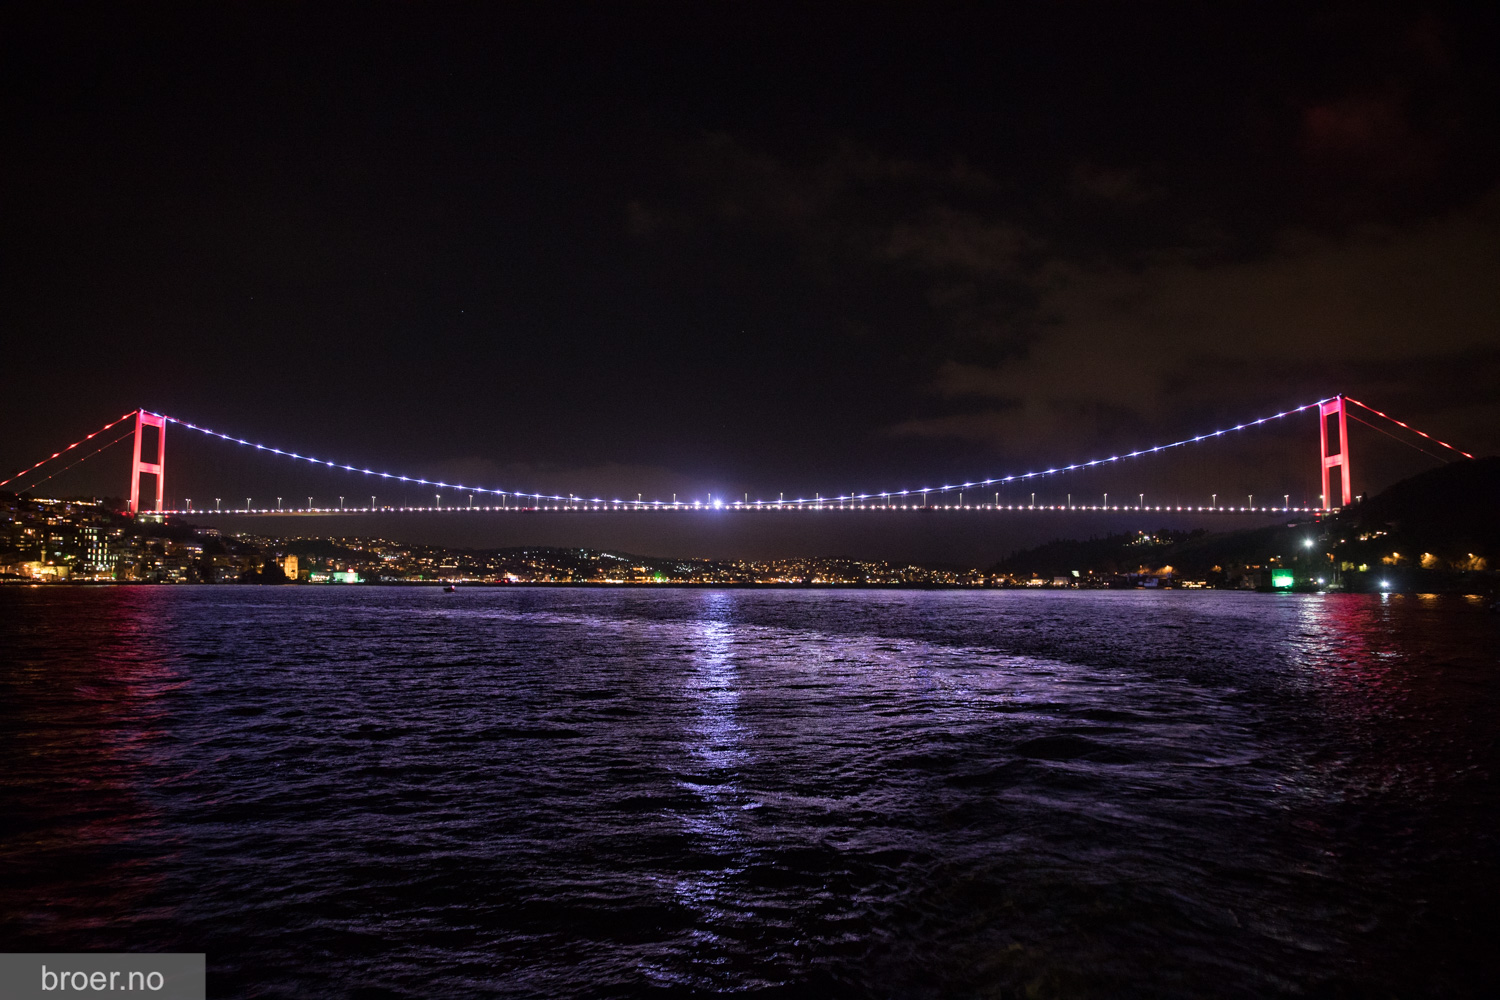 picture of Fatih Sultan Mehmet Bridge